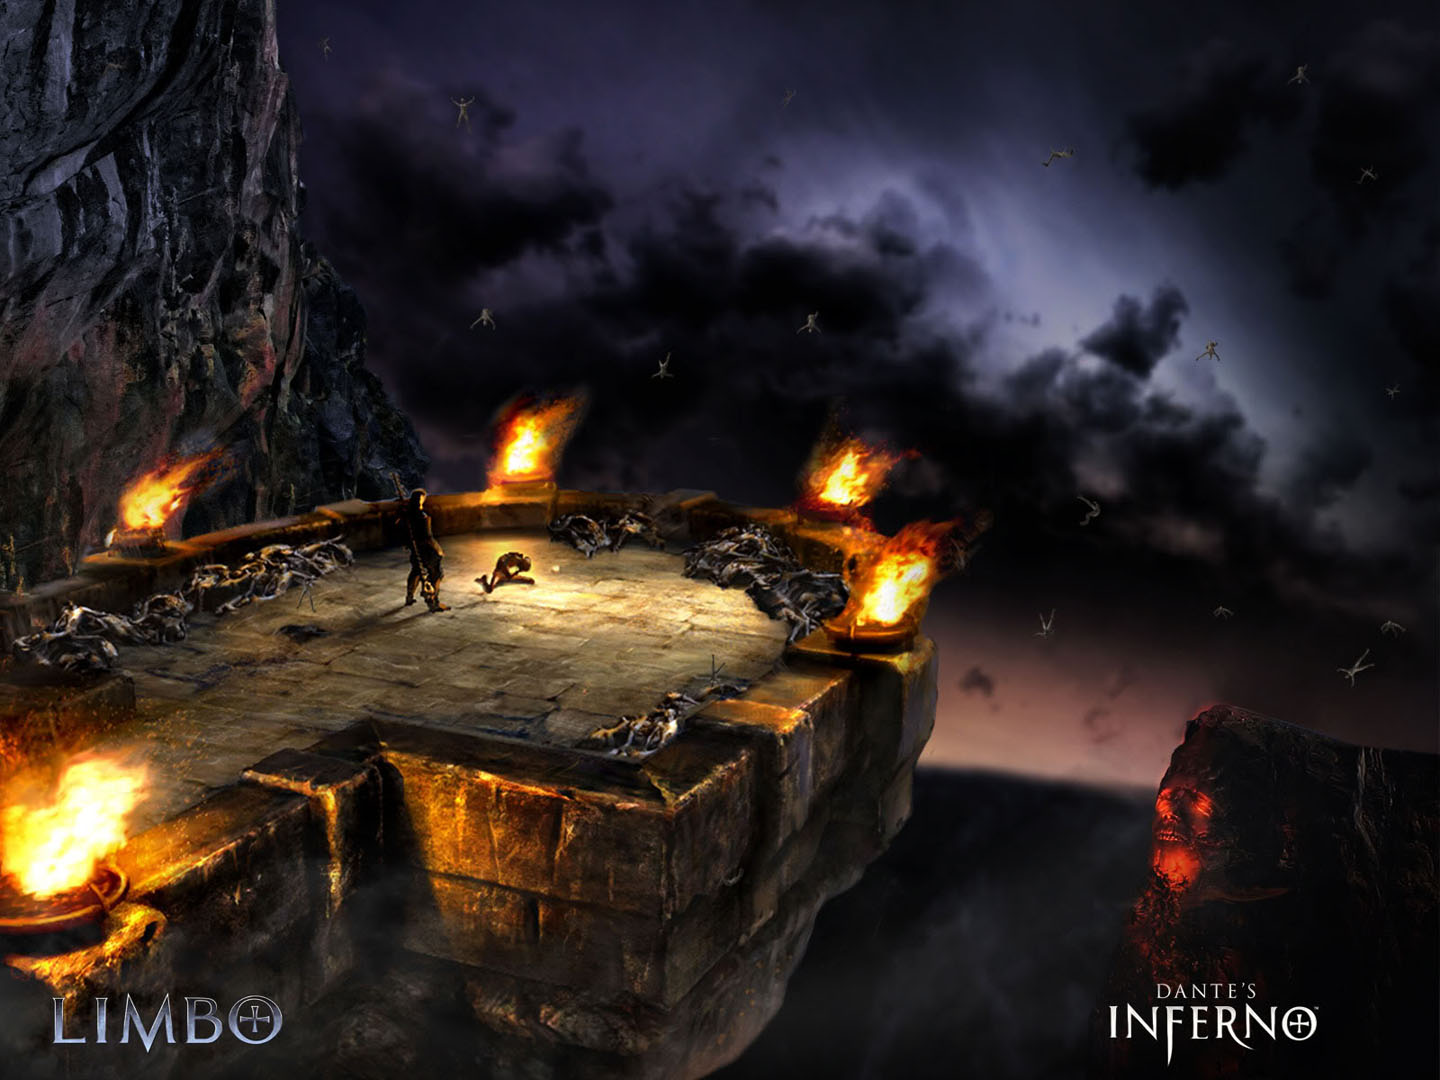 """dantes inferno action games picture entitled """" limbo """"."""